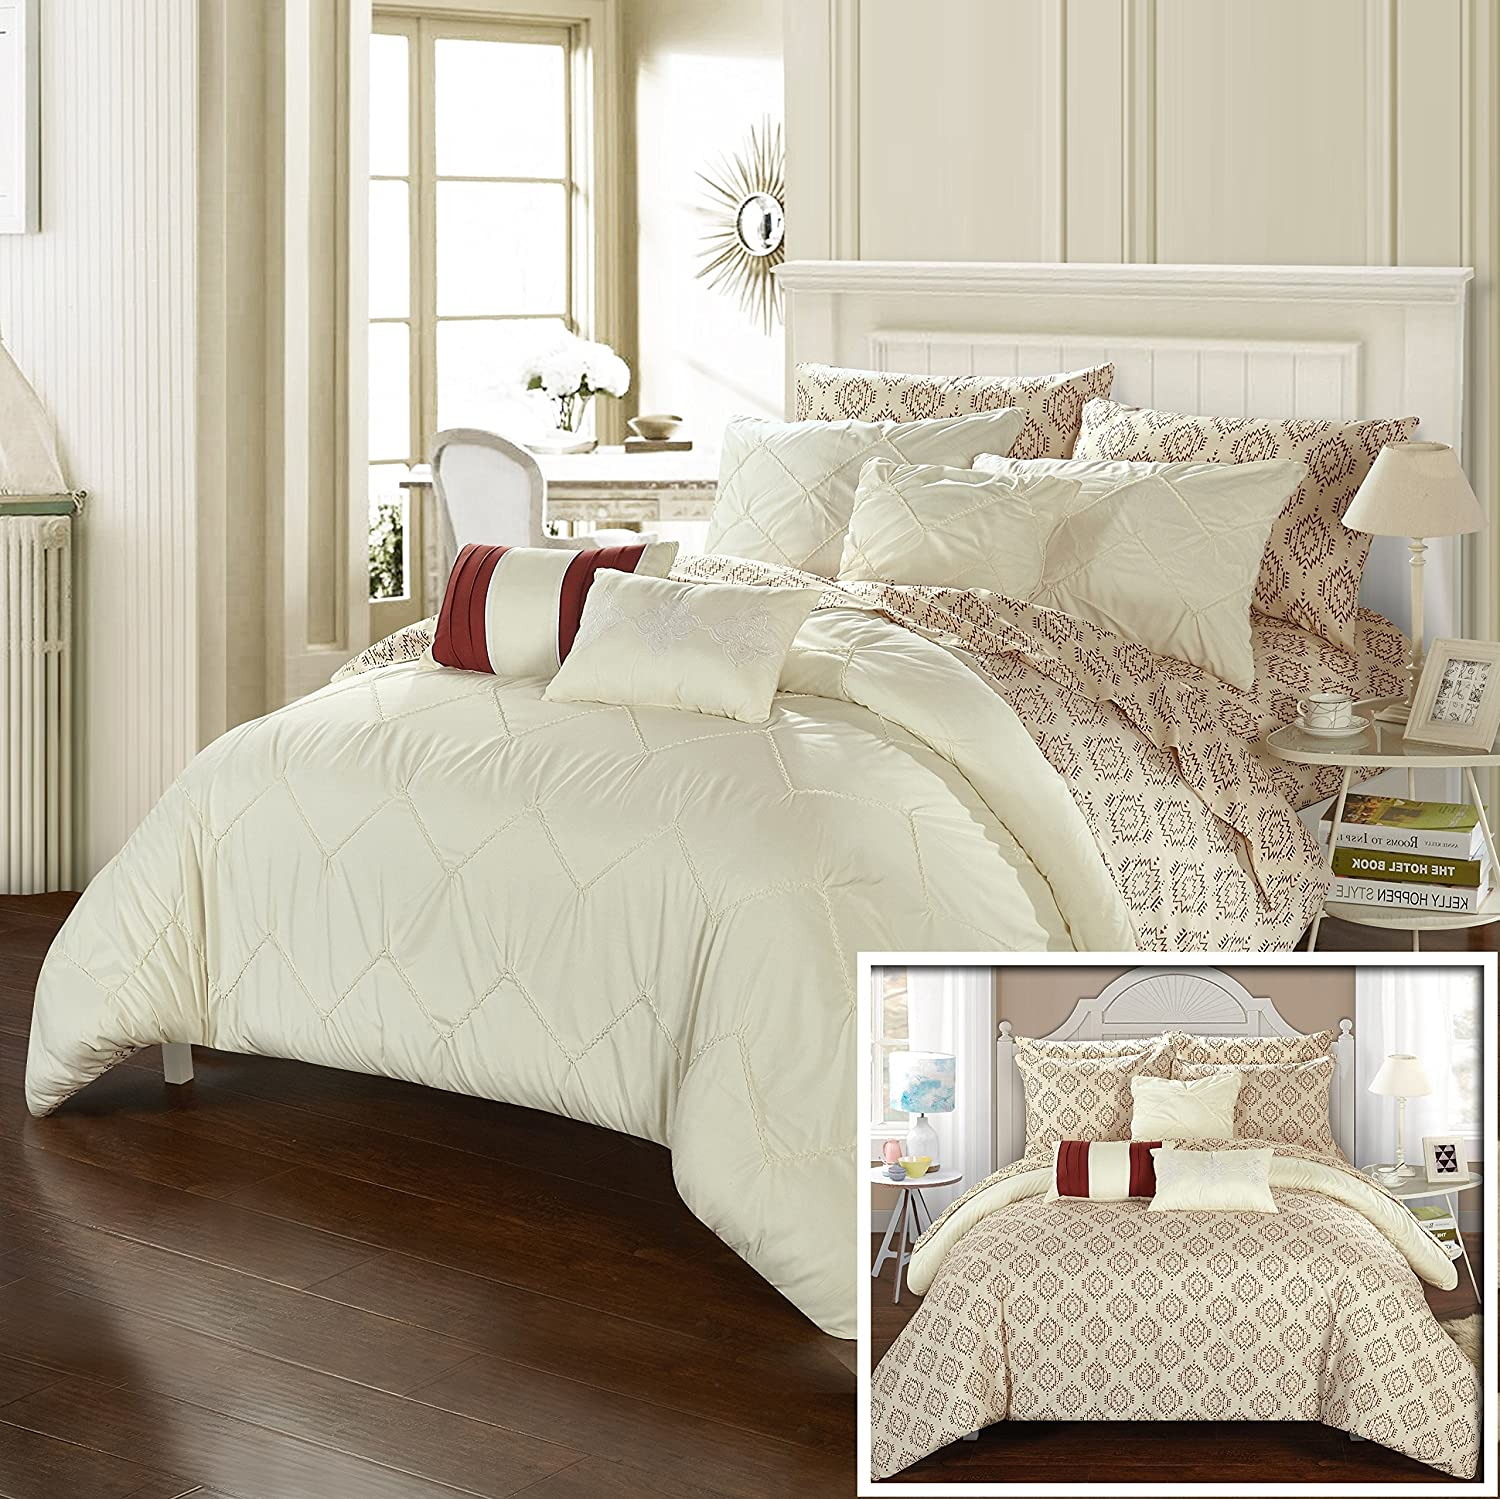 Perfect Home 10 Piece Danton Rope like Pinch Pleated REVERSIBLE Oversized & Overfilled Queen Bed In a Bag Comforter Set Beige